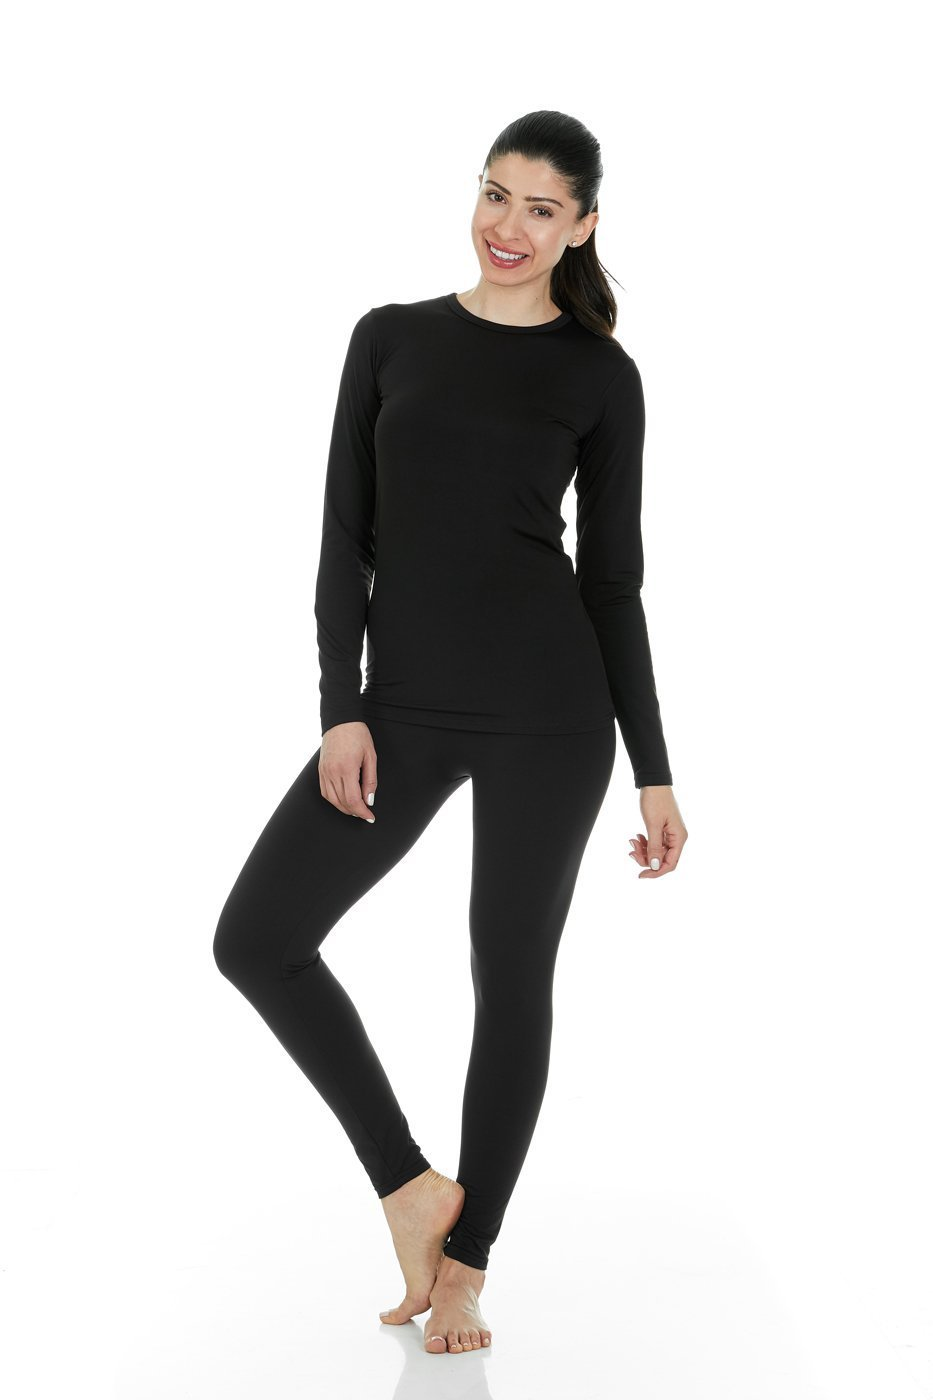 Thermajane Women's Ultra Soft Thermal Underwear Long Johns Set with Fleece Lined (Small, Black) by Thermajane